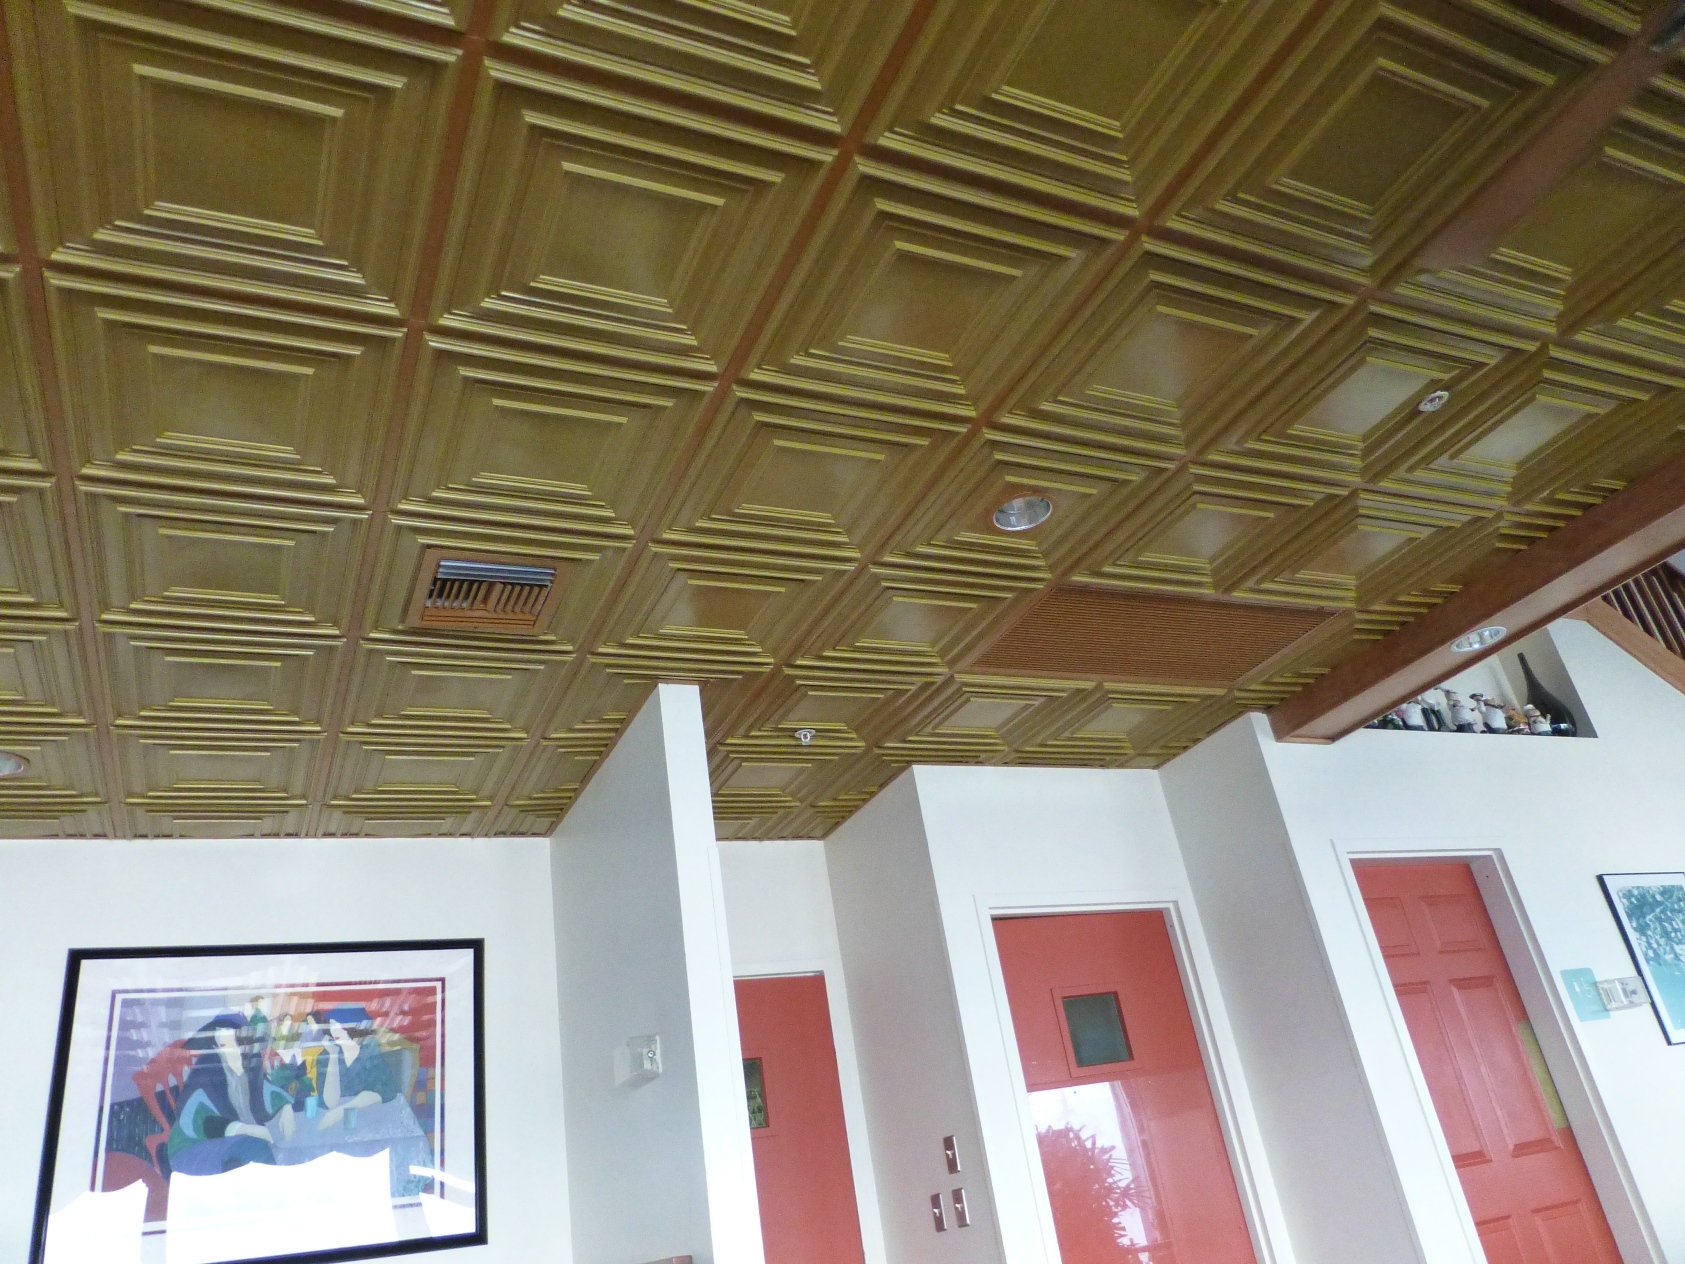 Armstrong Gridstone Ceiling Tile Tejas Materials Inc